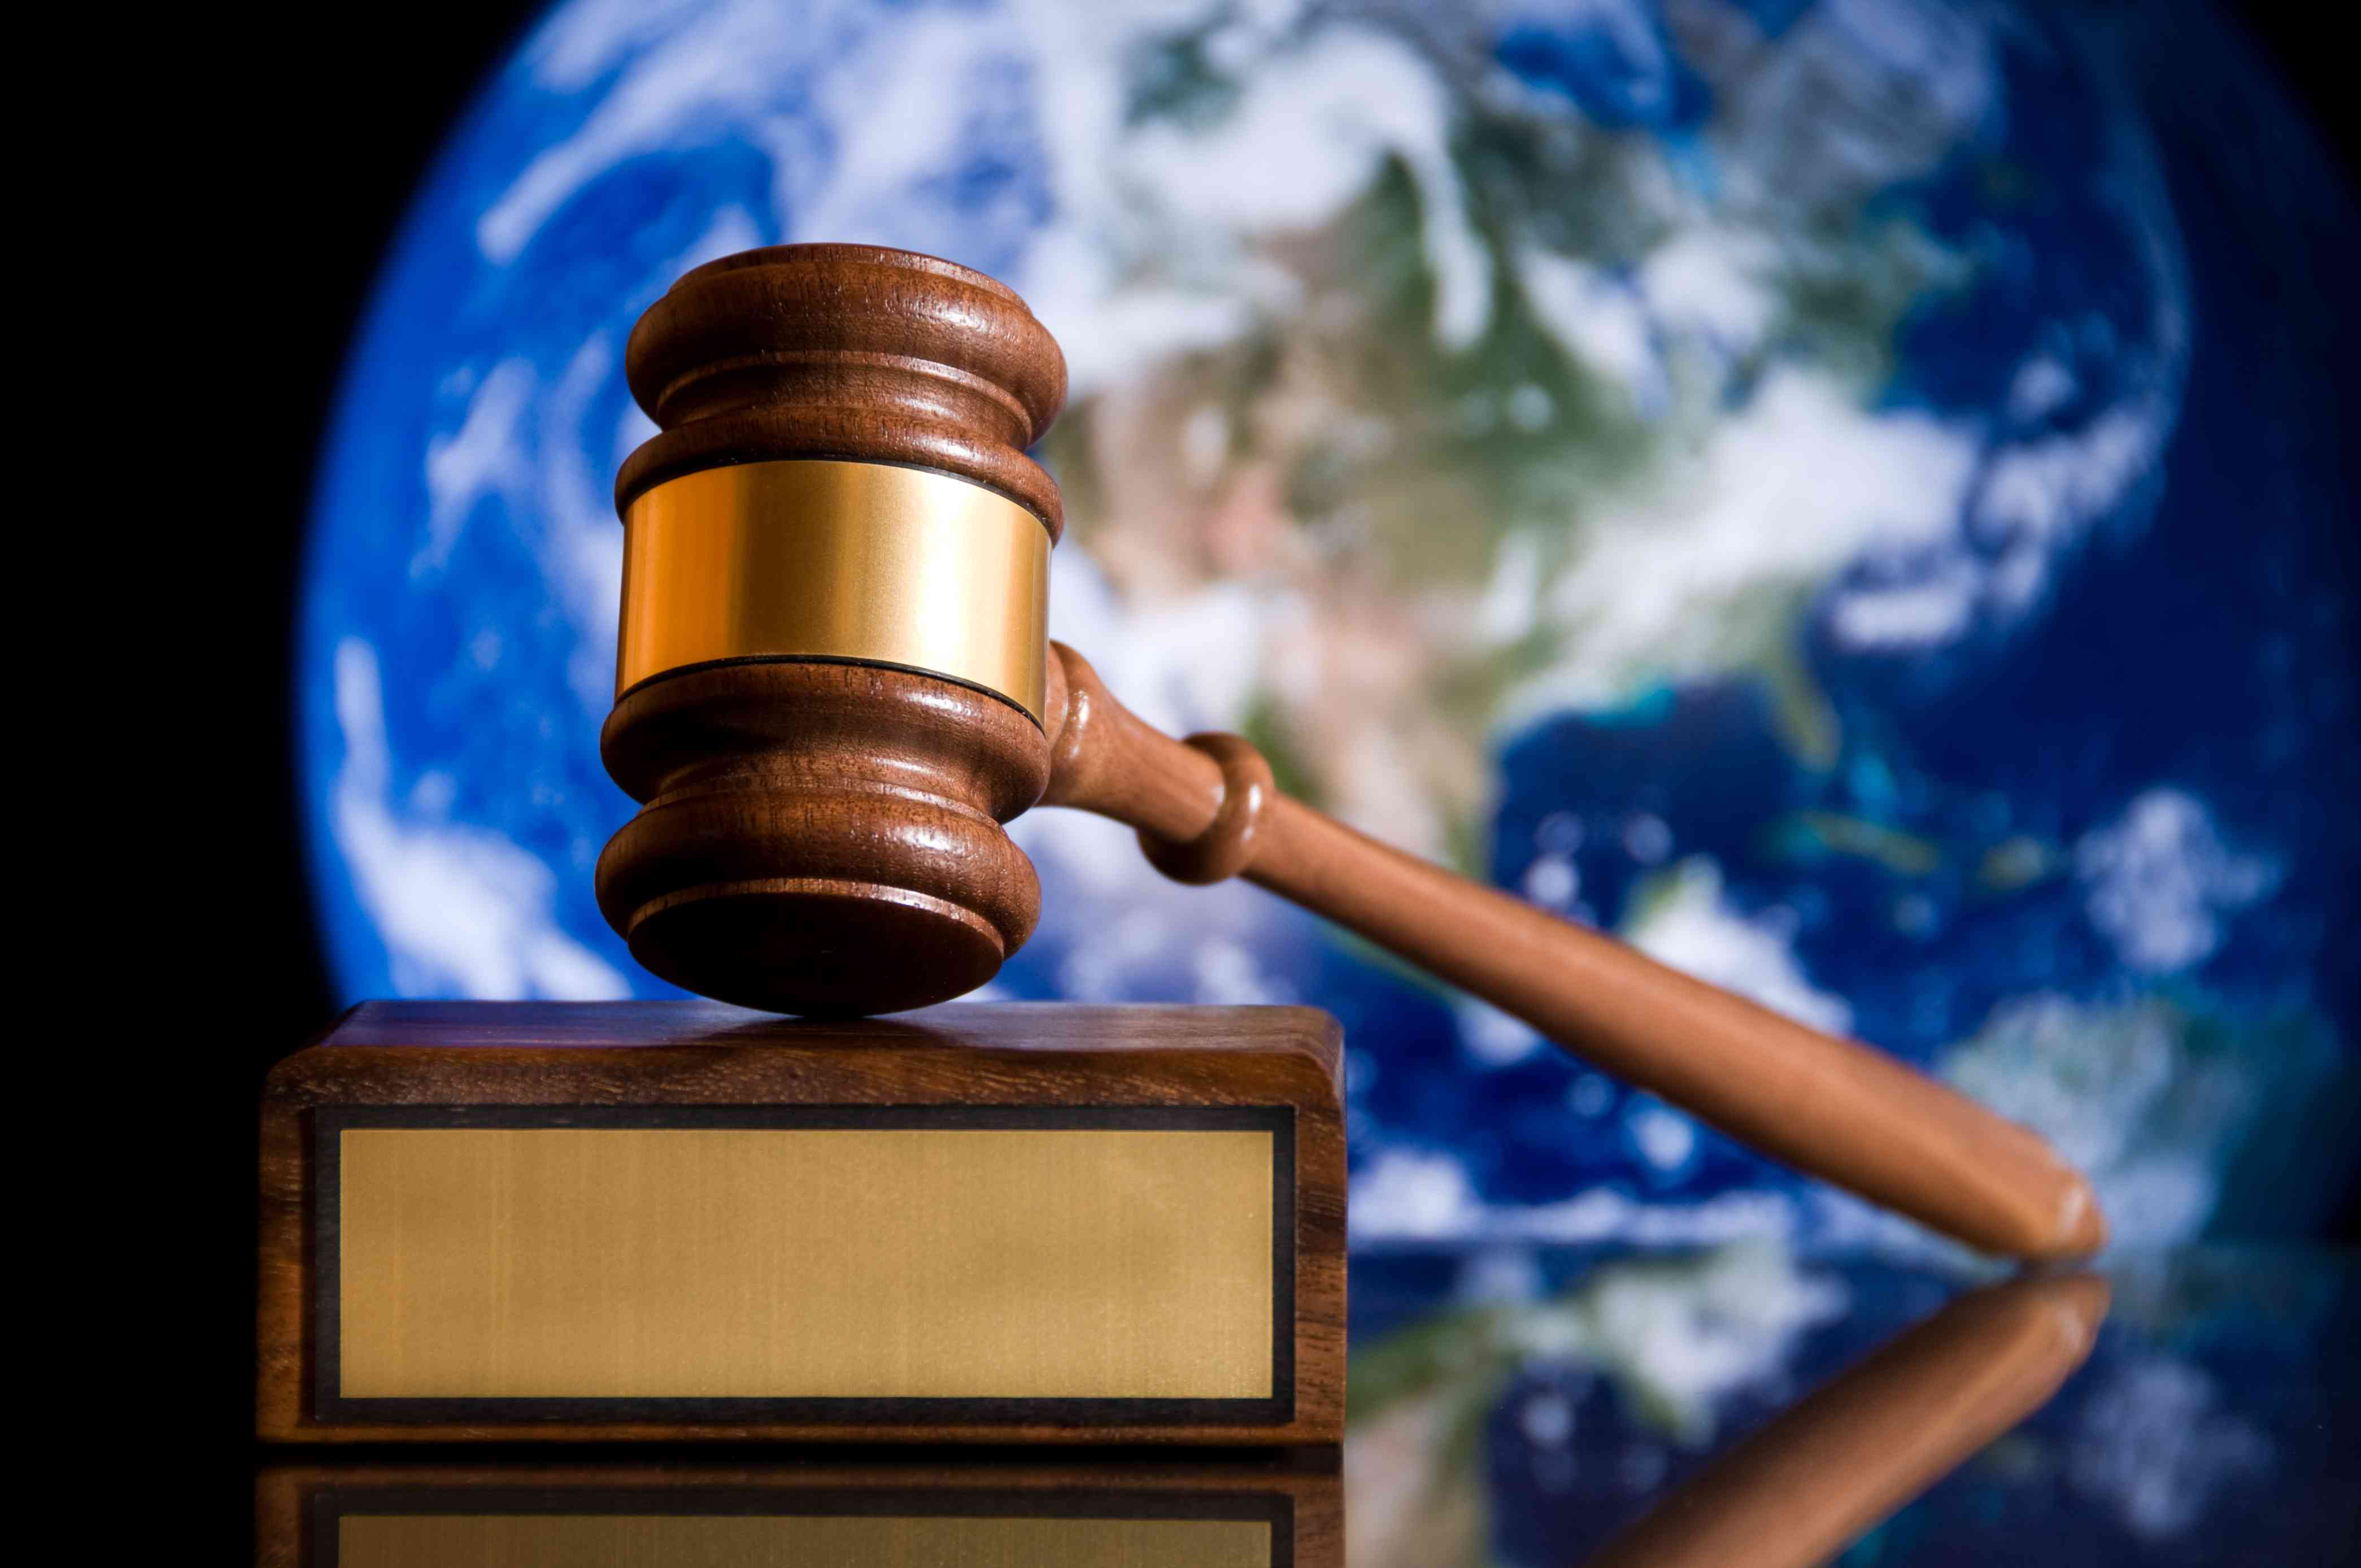 the legal professional serves global clients.